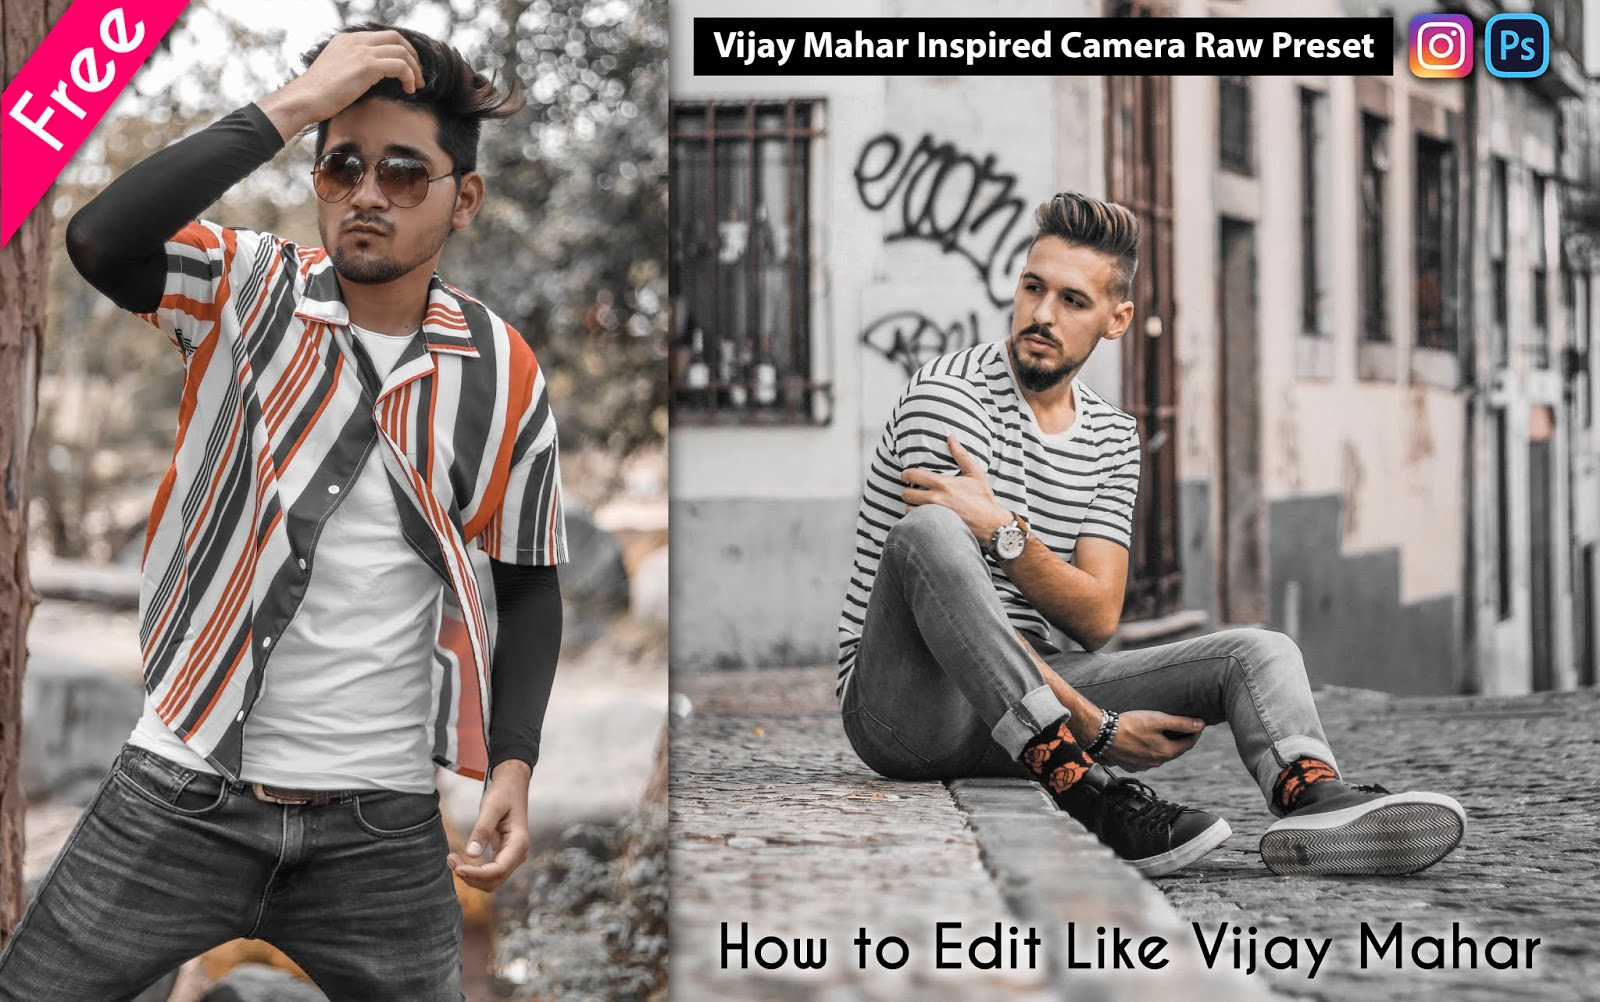 Download Vijay Mahar Inspired Camera Raw Presets for Free | Perfect Gold Skin & Grey Preset | How to Edit Like Vijay Mahar